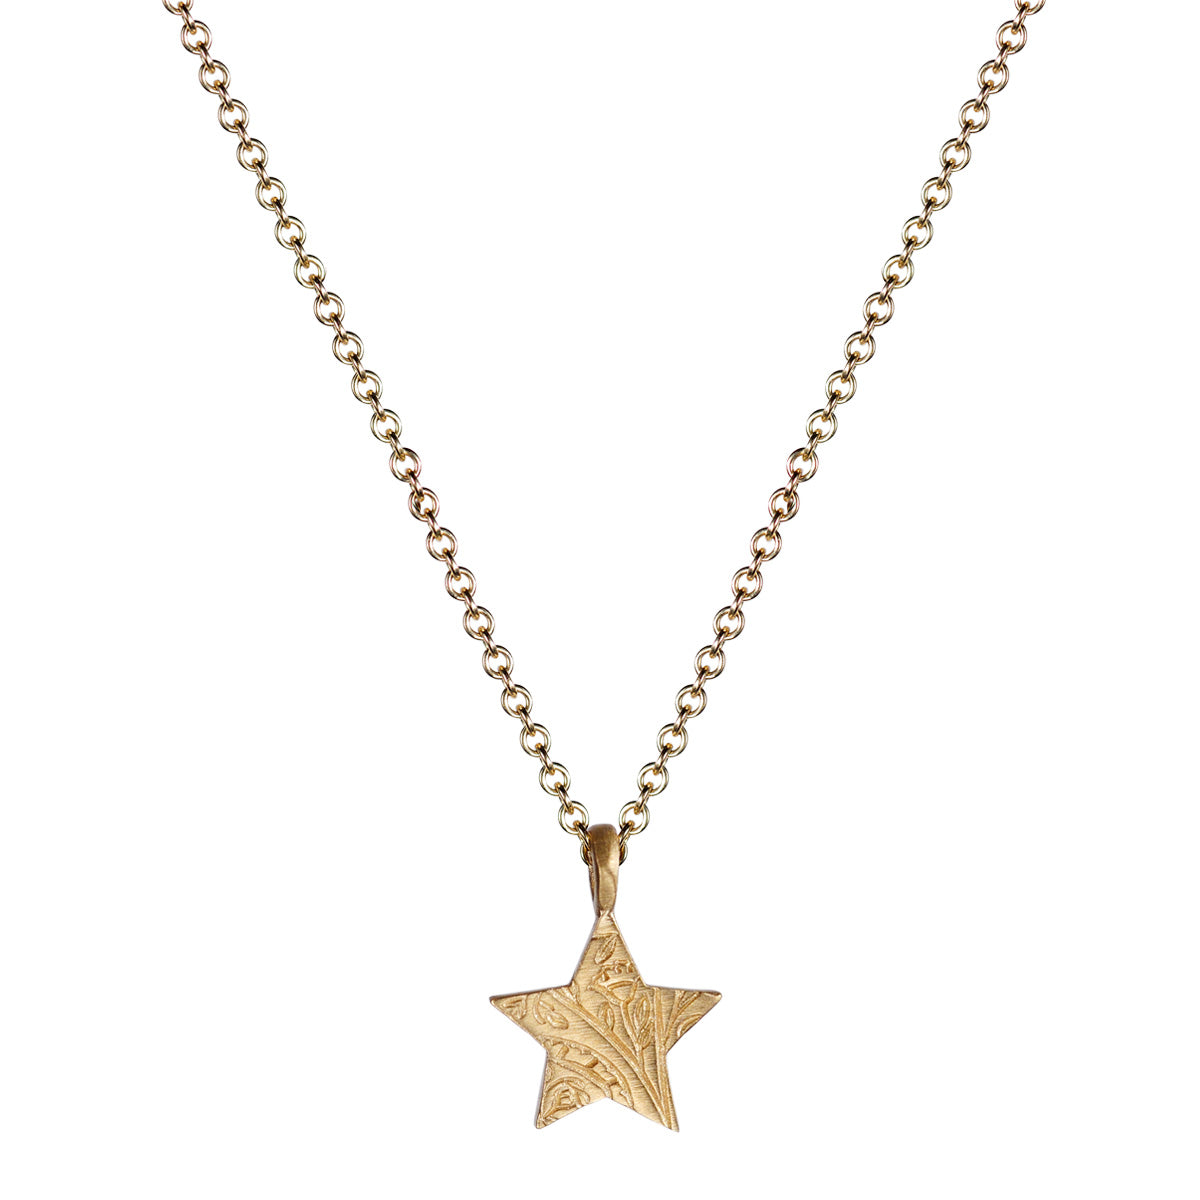 10K Gold Small Paisley Star Pendant